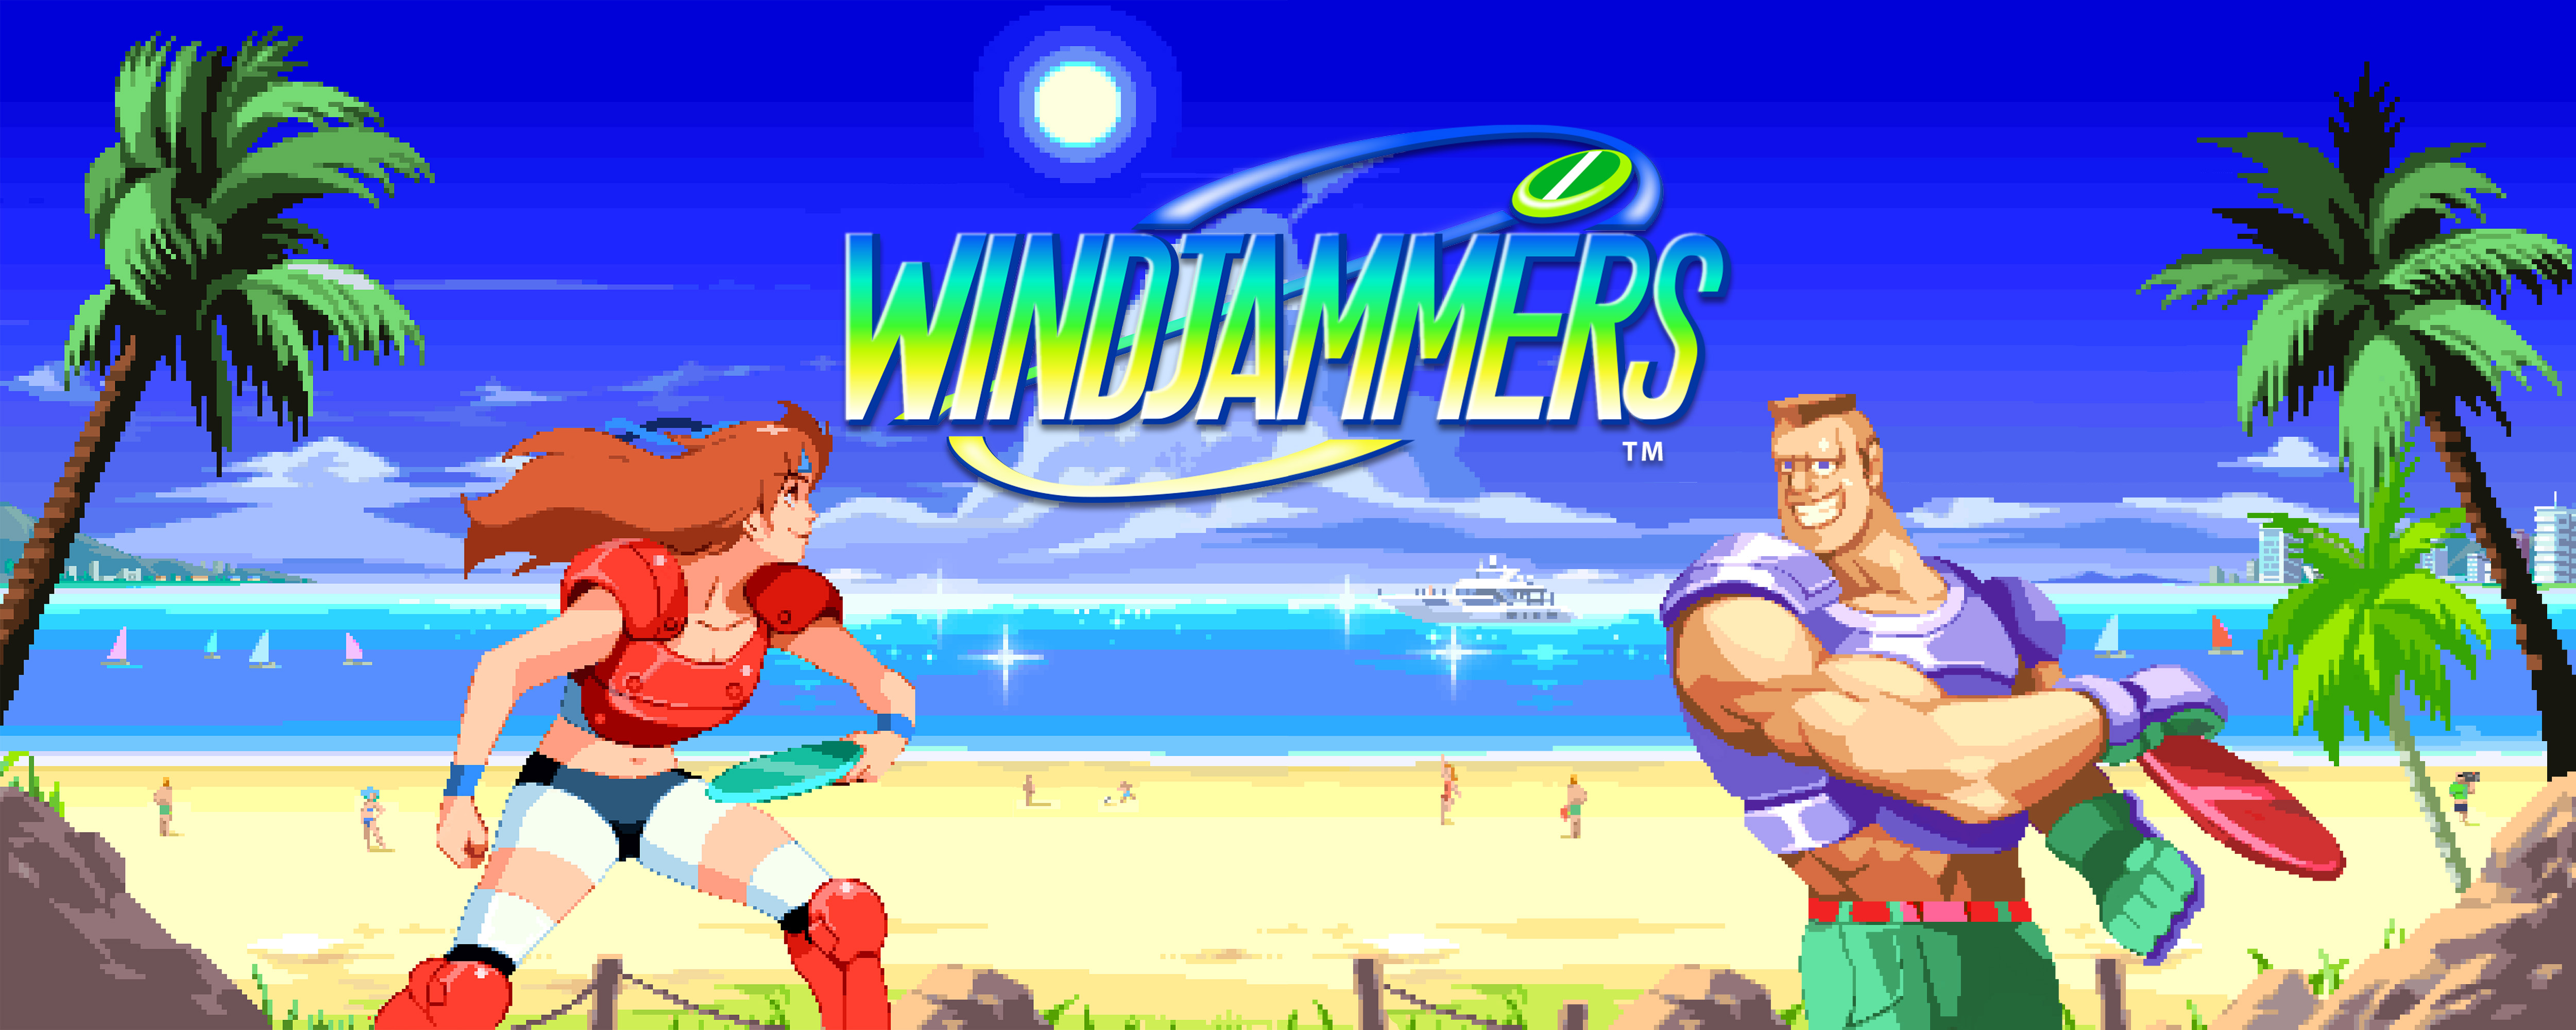 Windjammers arrives August 29 on PS4 & PS Vita